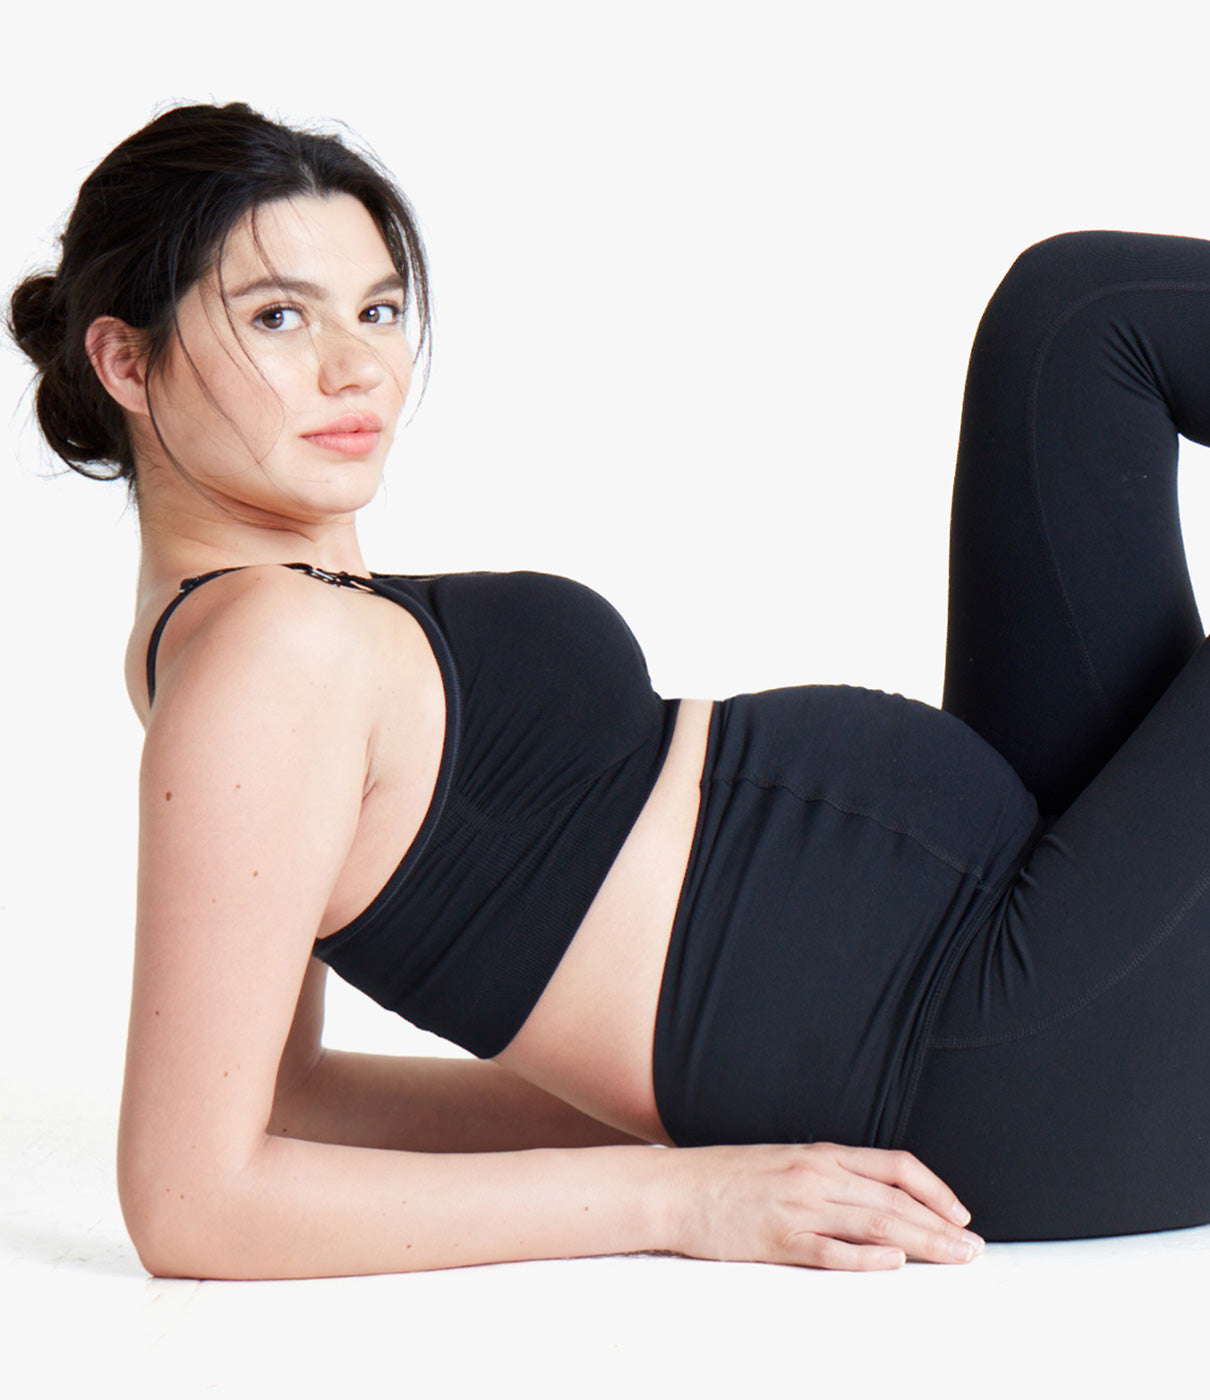 GROWS WITH YOUContoured panel accommodates a growing belly.